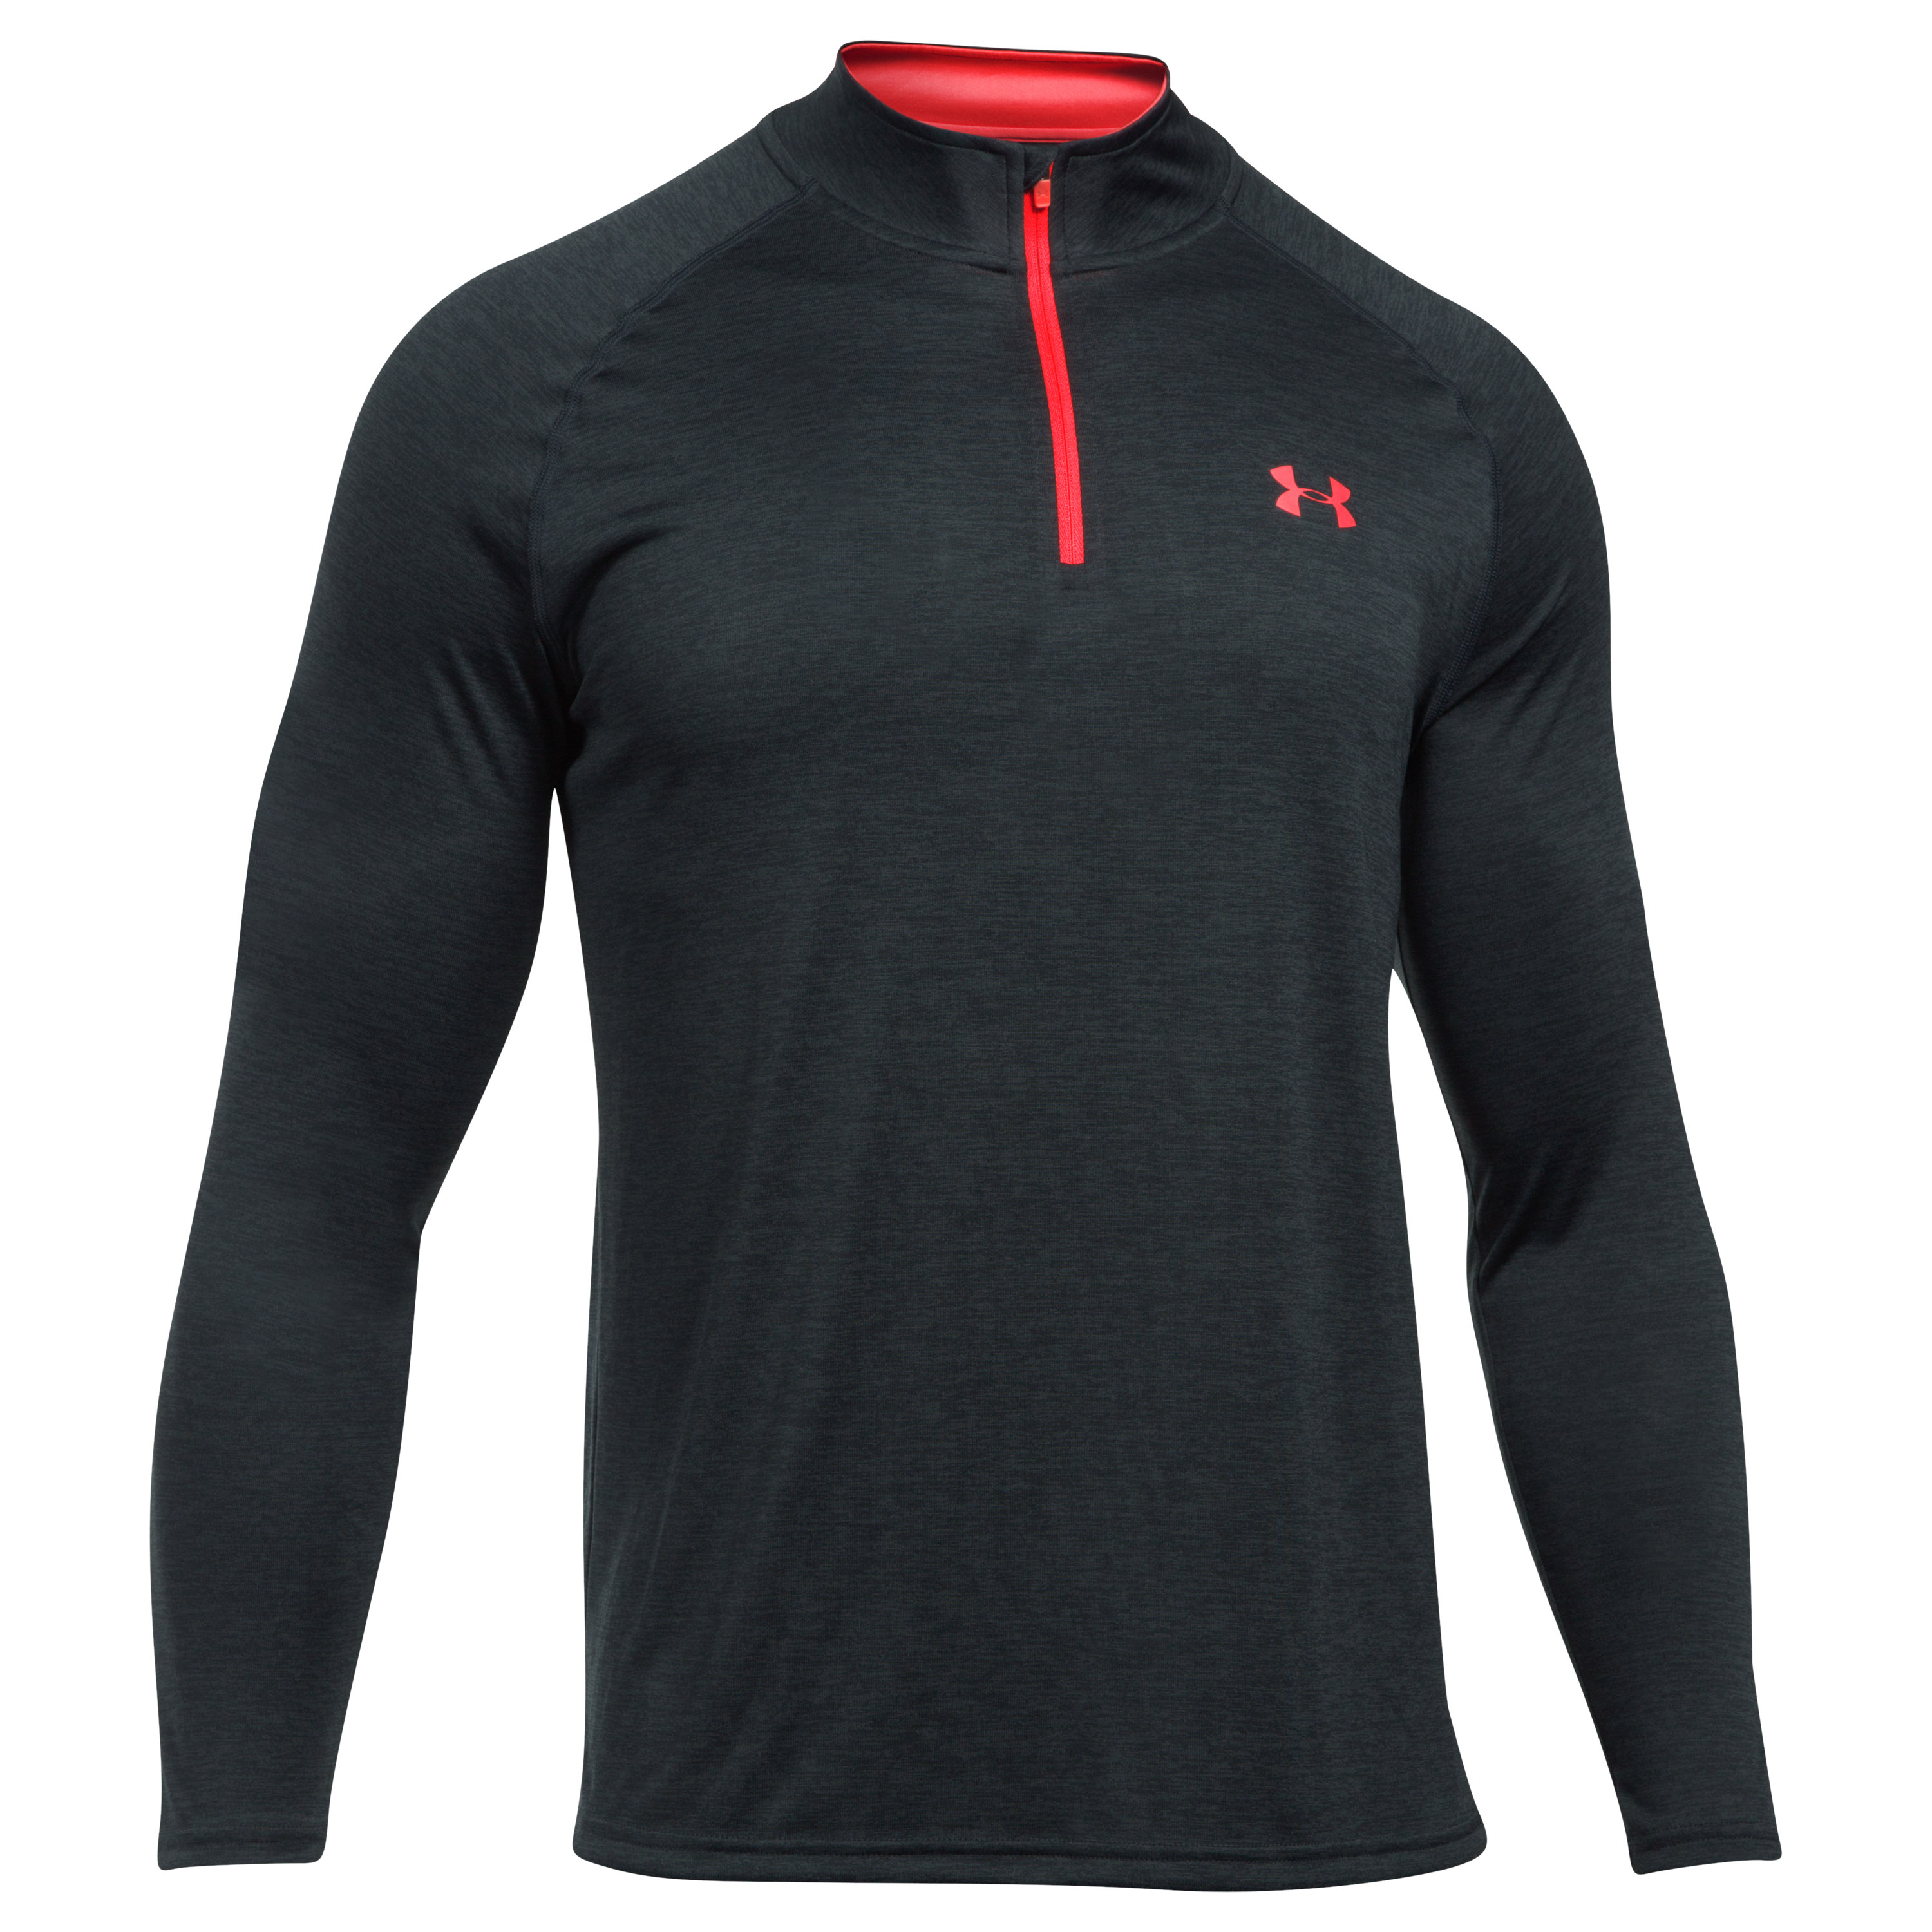 Under Armour Pullover Tech Novelty Quarter Zip schwarz rot